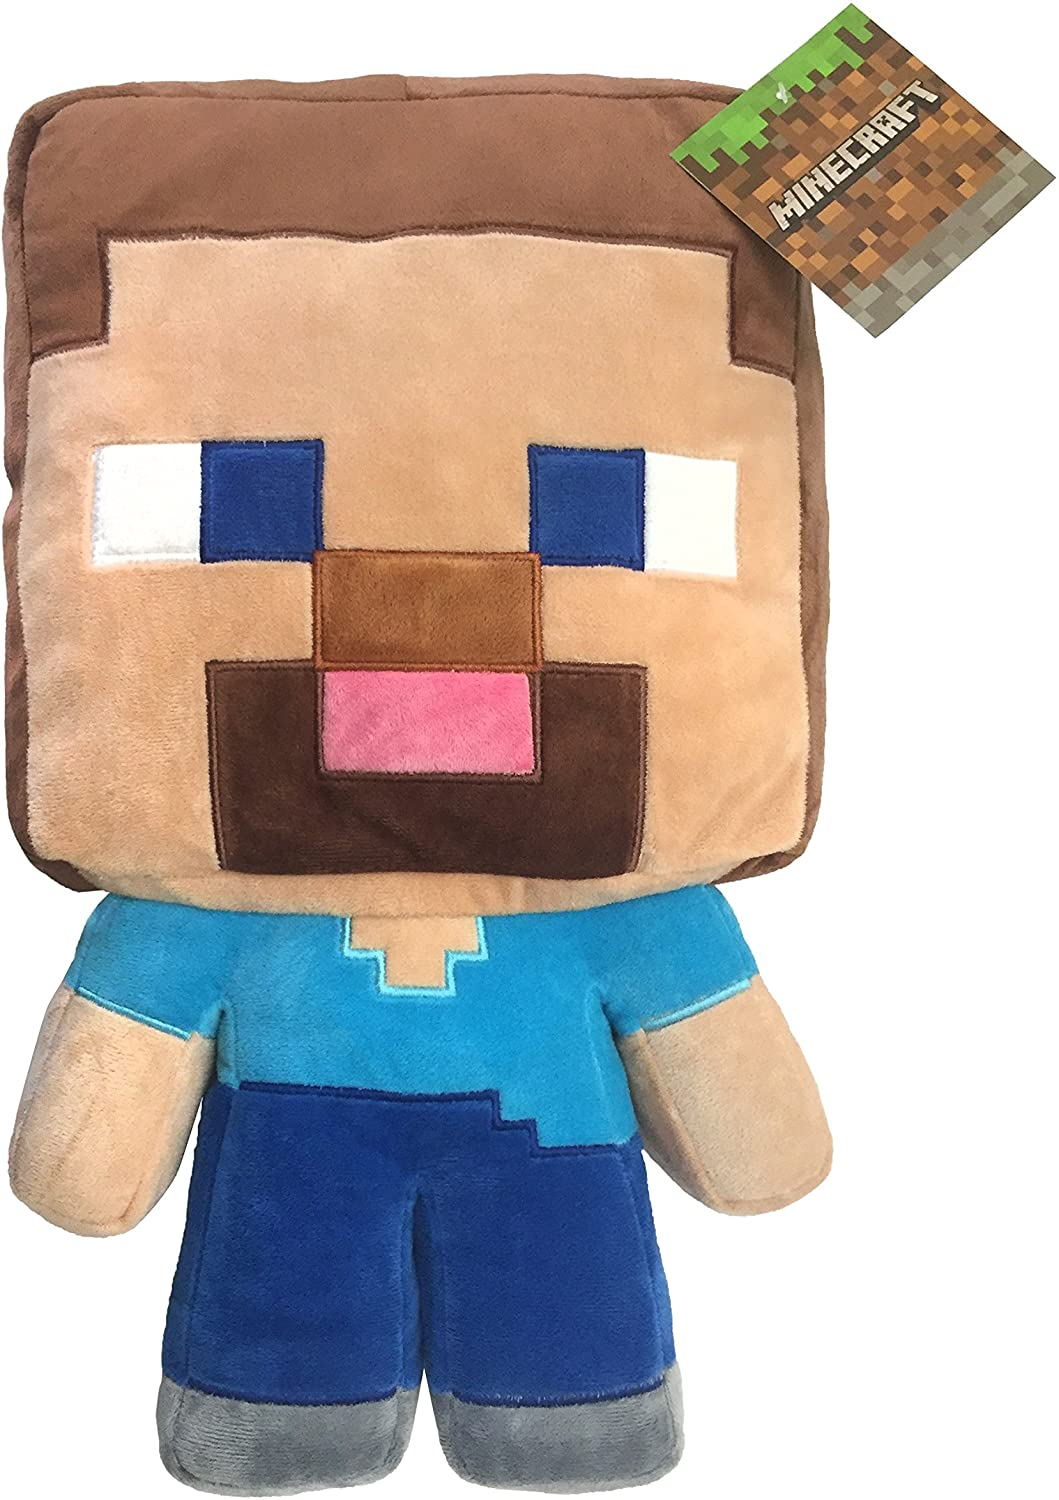 Amazon Com Jay Franco Mojang Minecraft Steve Plush Pillow Buddy